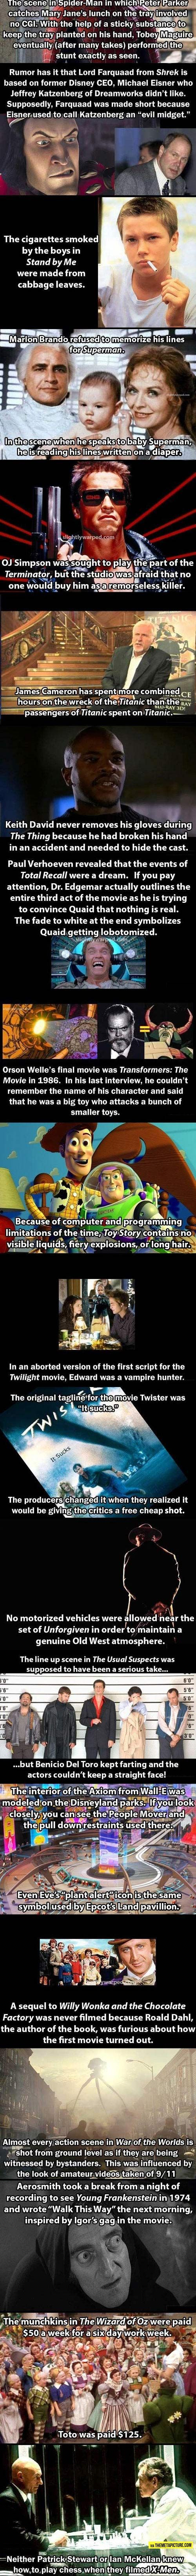 Movie facts you probably didn't know.